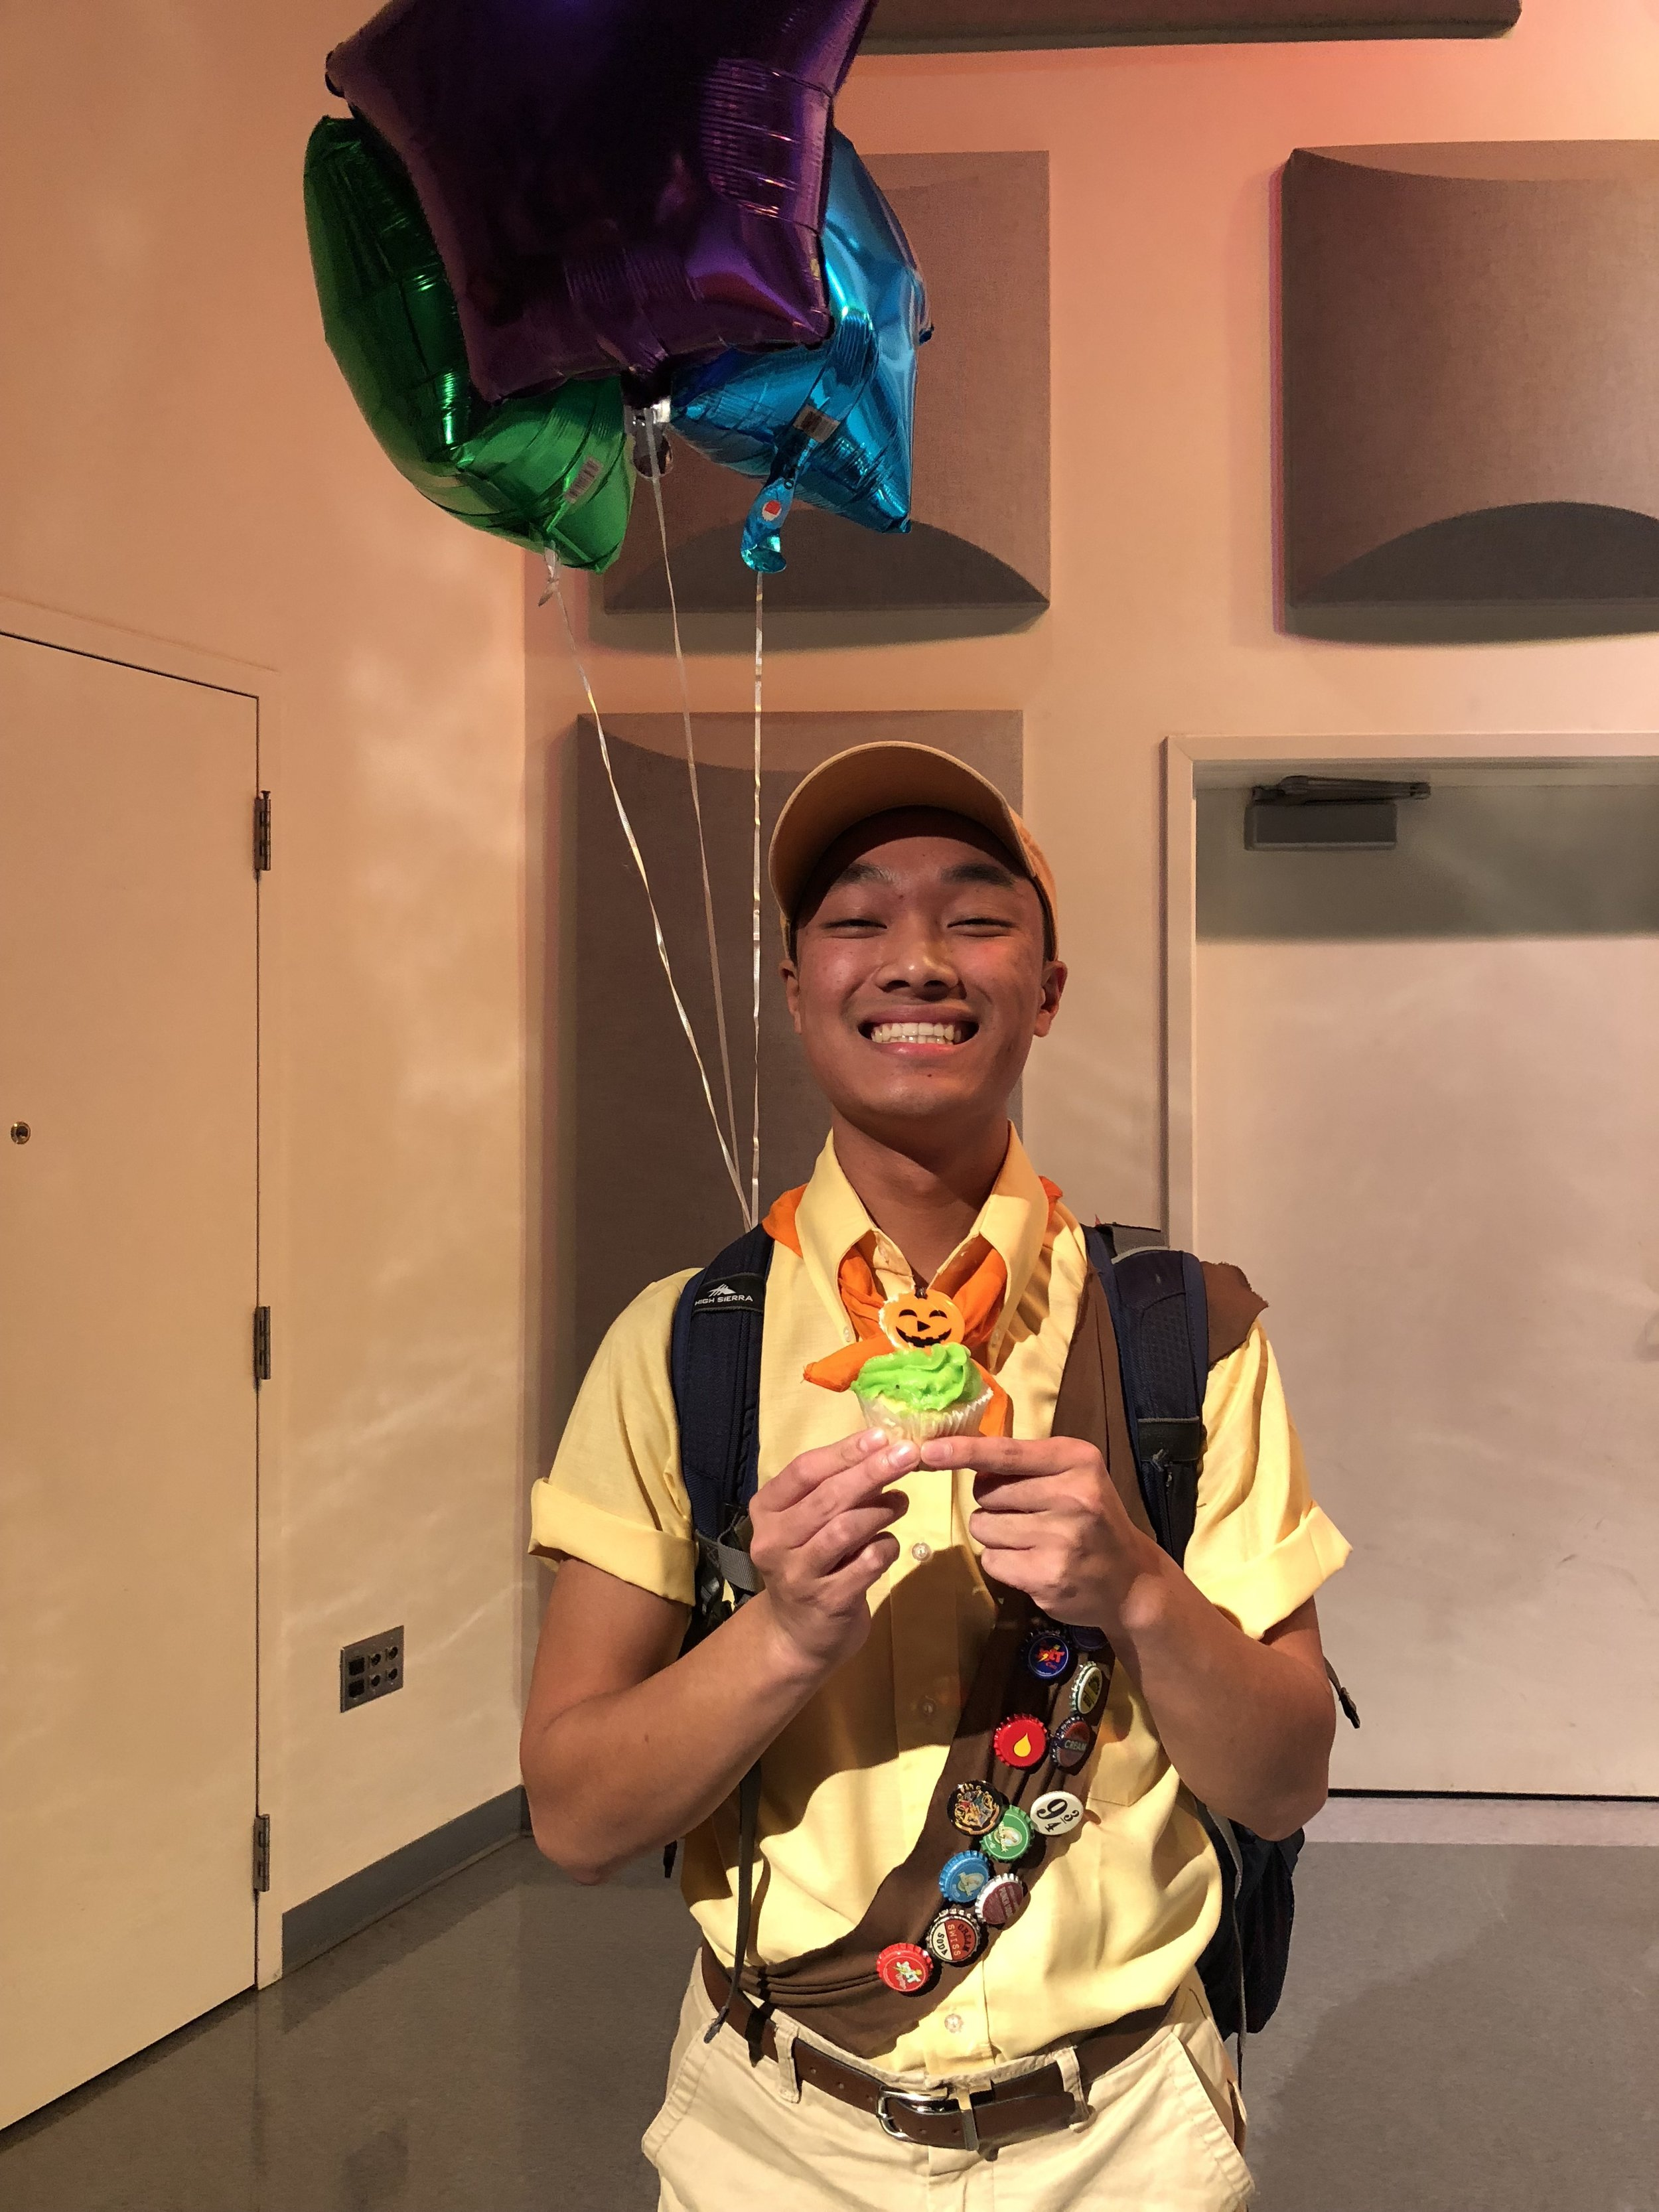 """Sophomore Adam Kelly placed second in the Improv Show's costume contest dressed as the adorable boy scout from Disney Pixar's """"Up."""""""